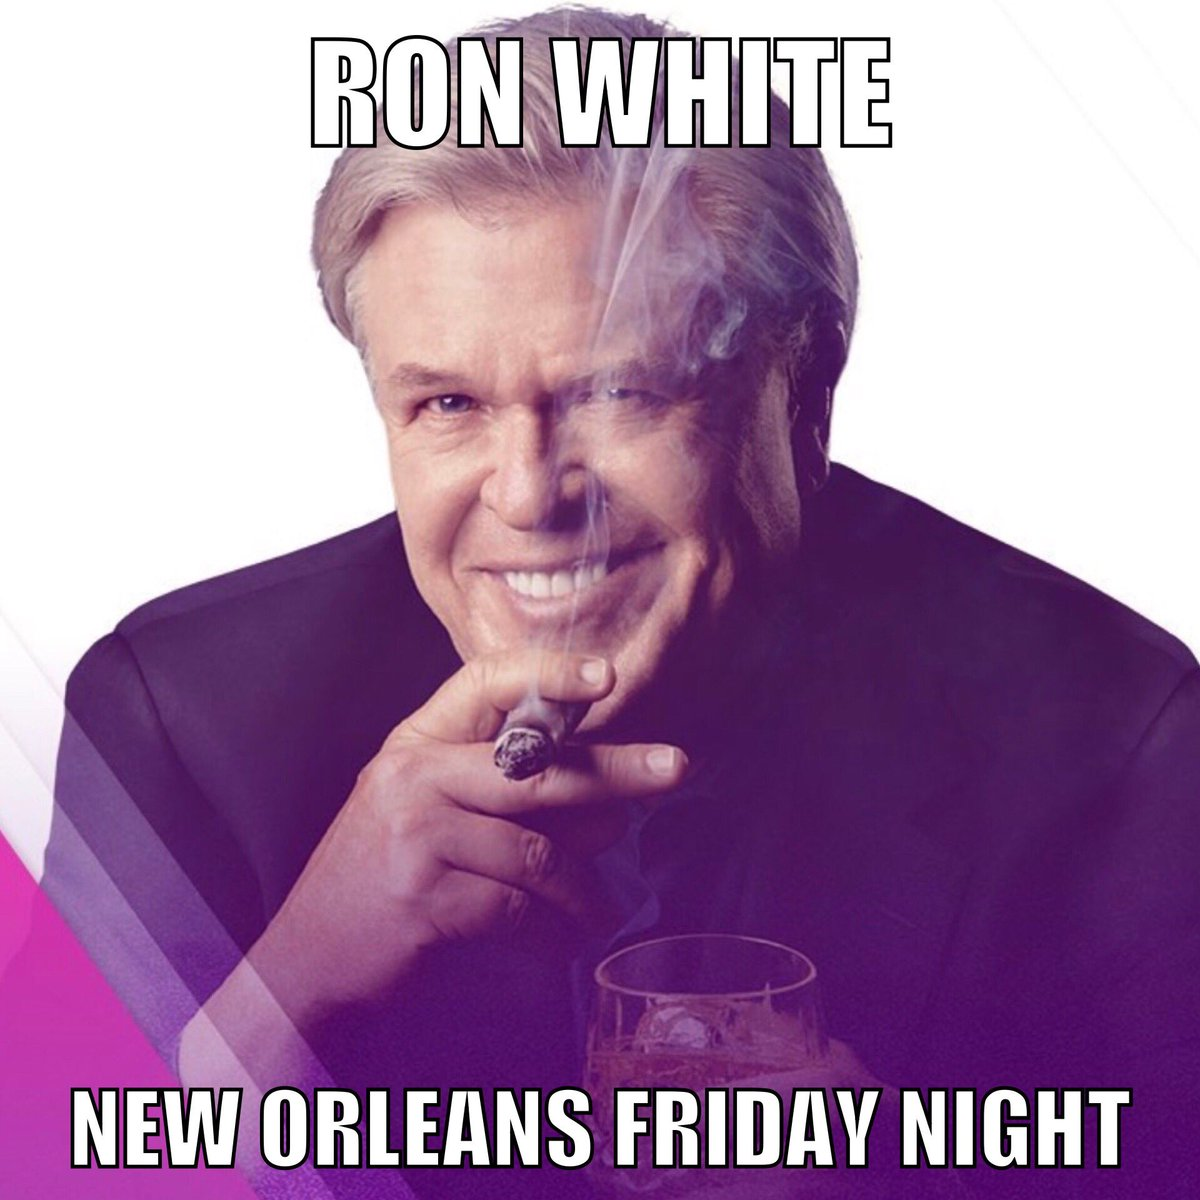 Ron Whites Tweet Friday Night New Orleans Its You And Me